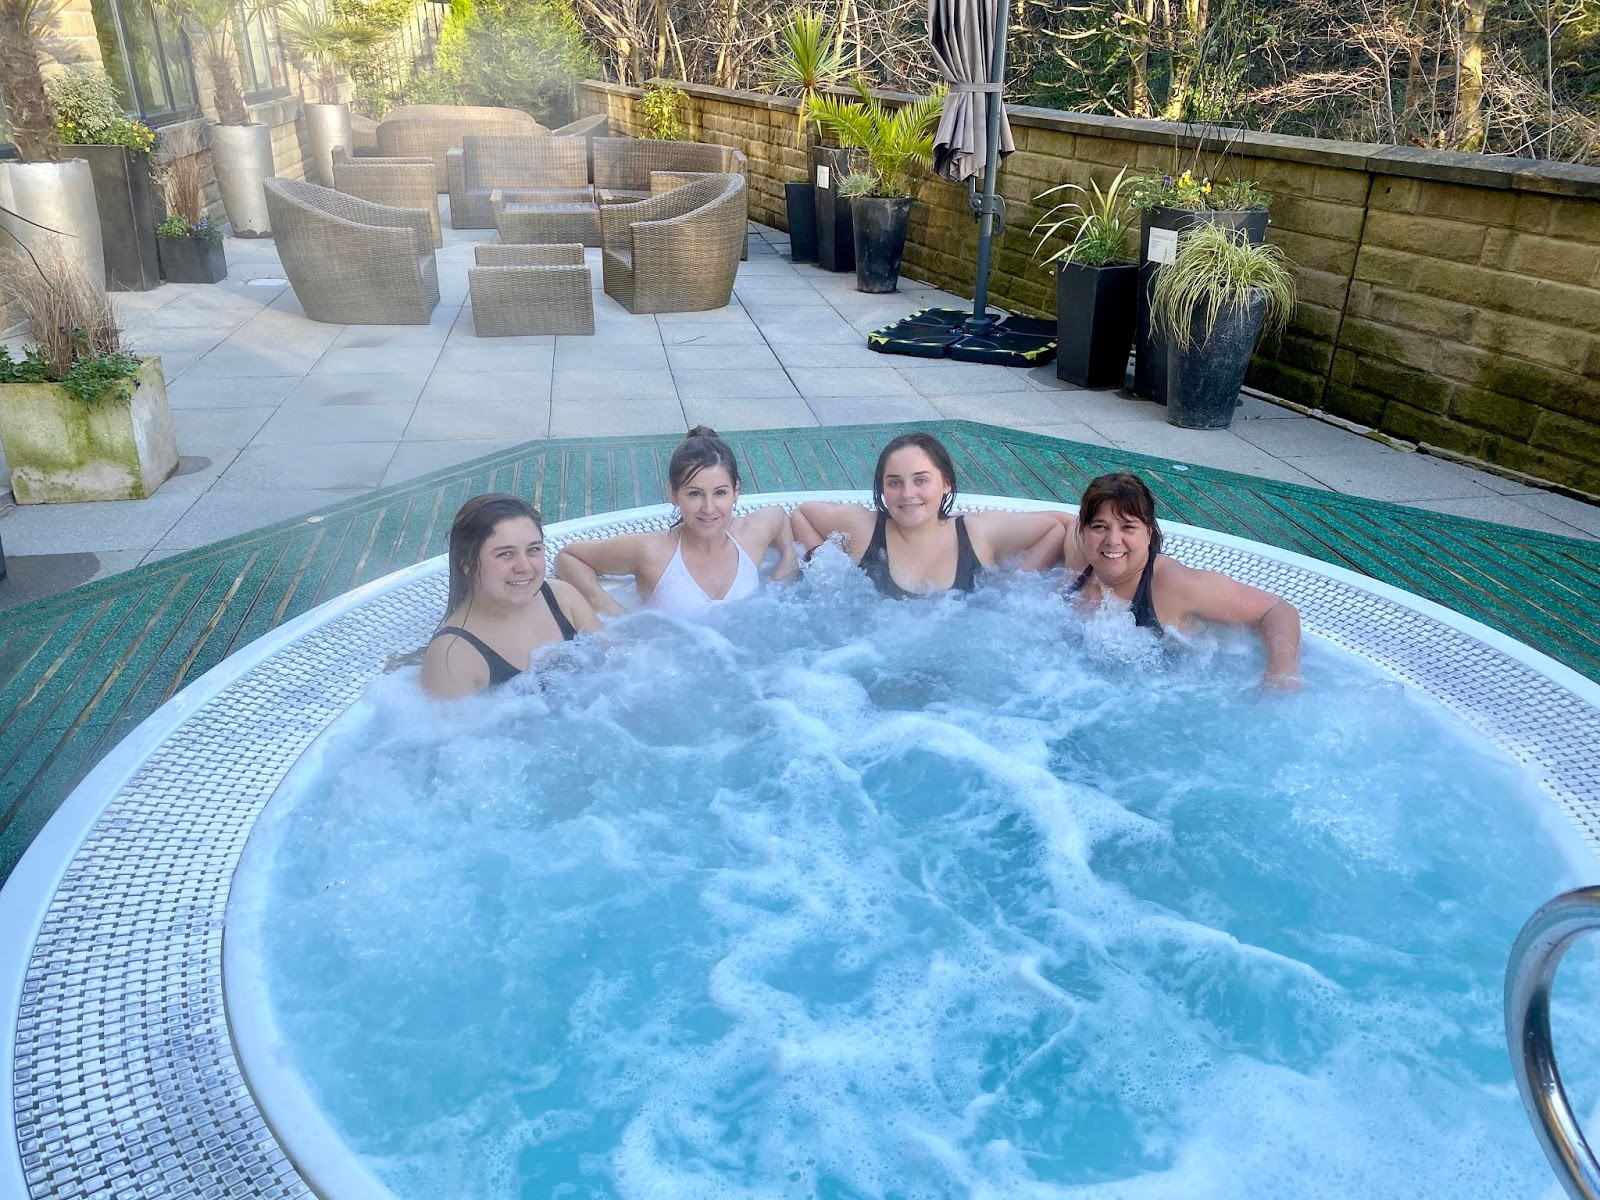 fun in the outdoor jacuzzi at Titanic spa